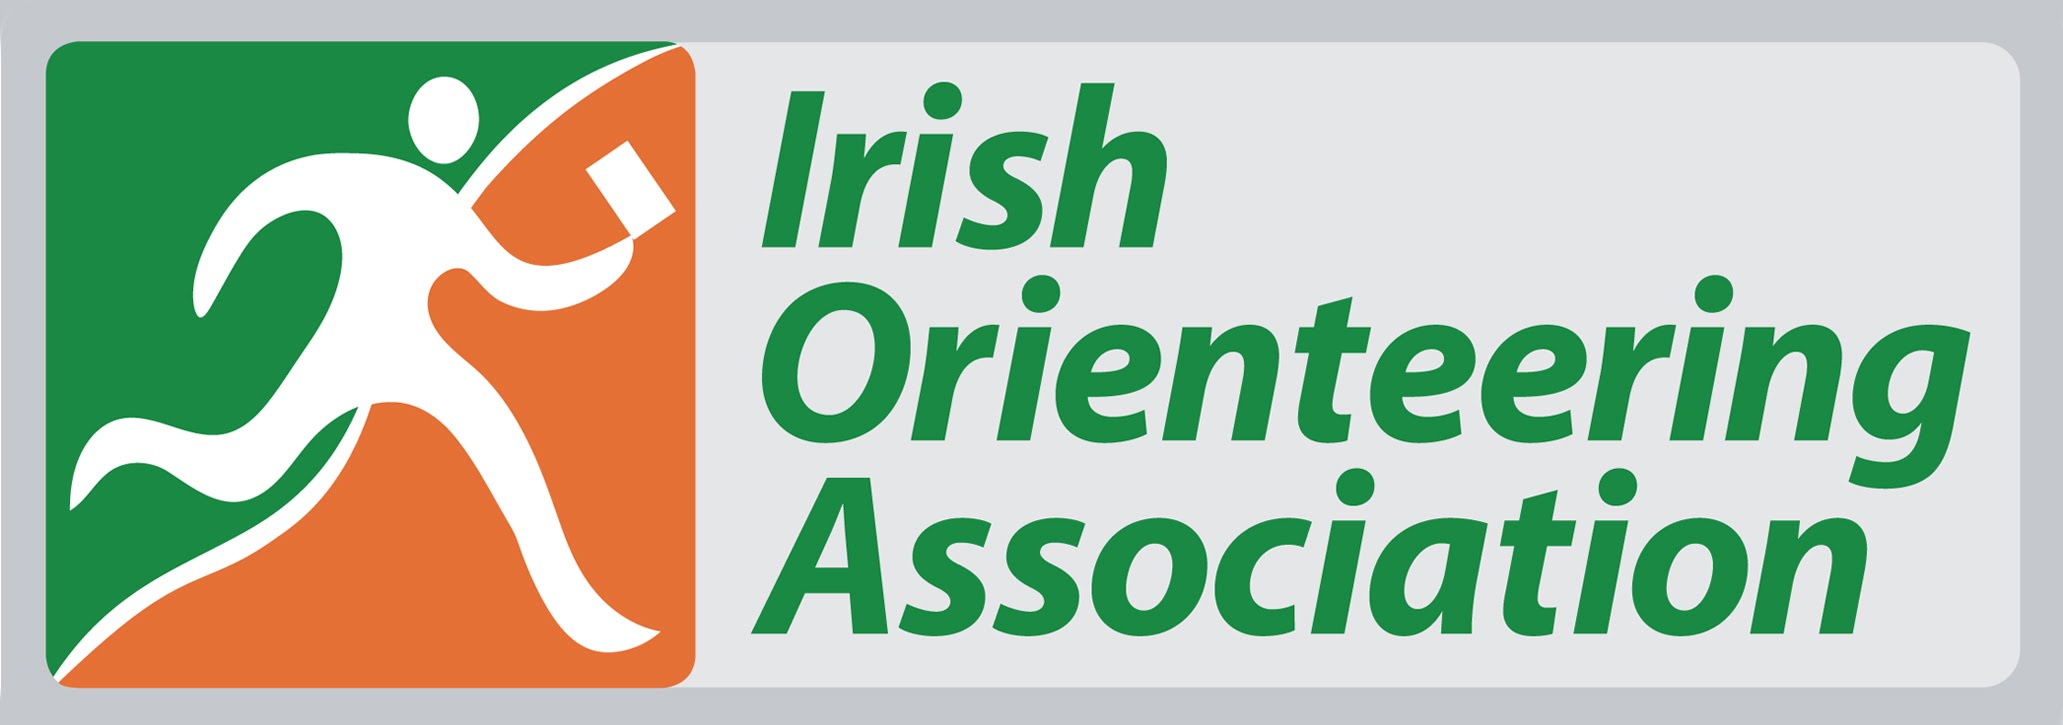 www.orienteering.ie